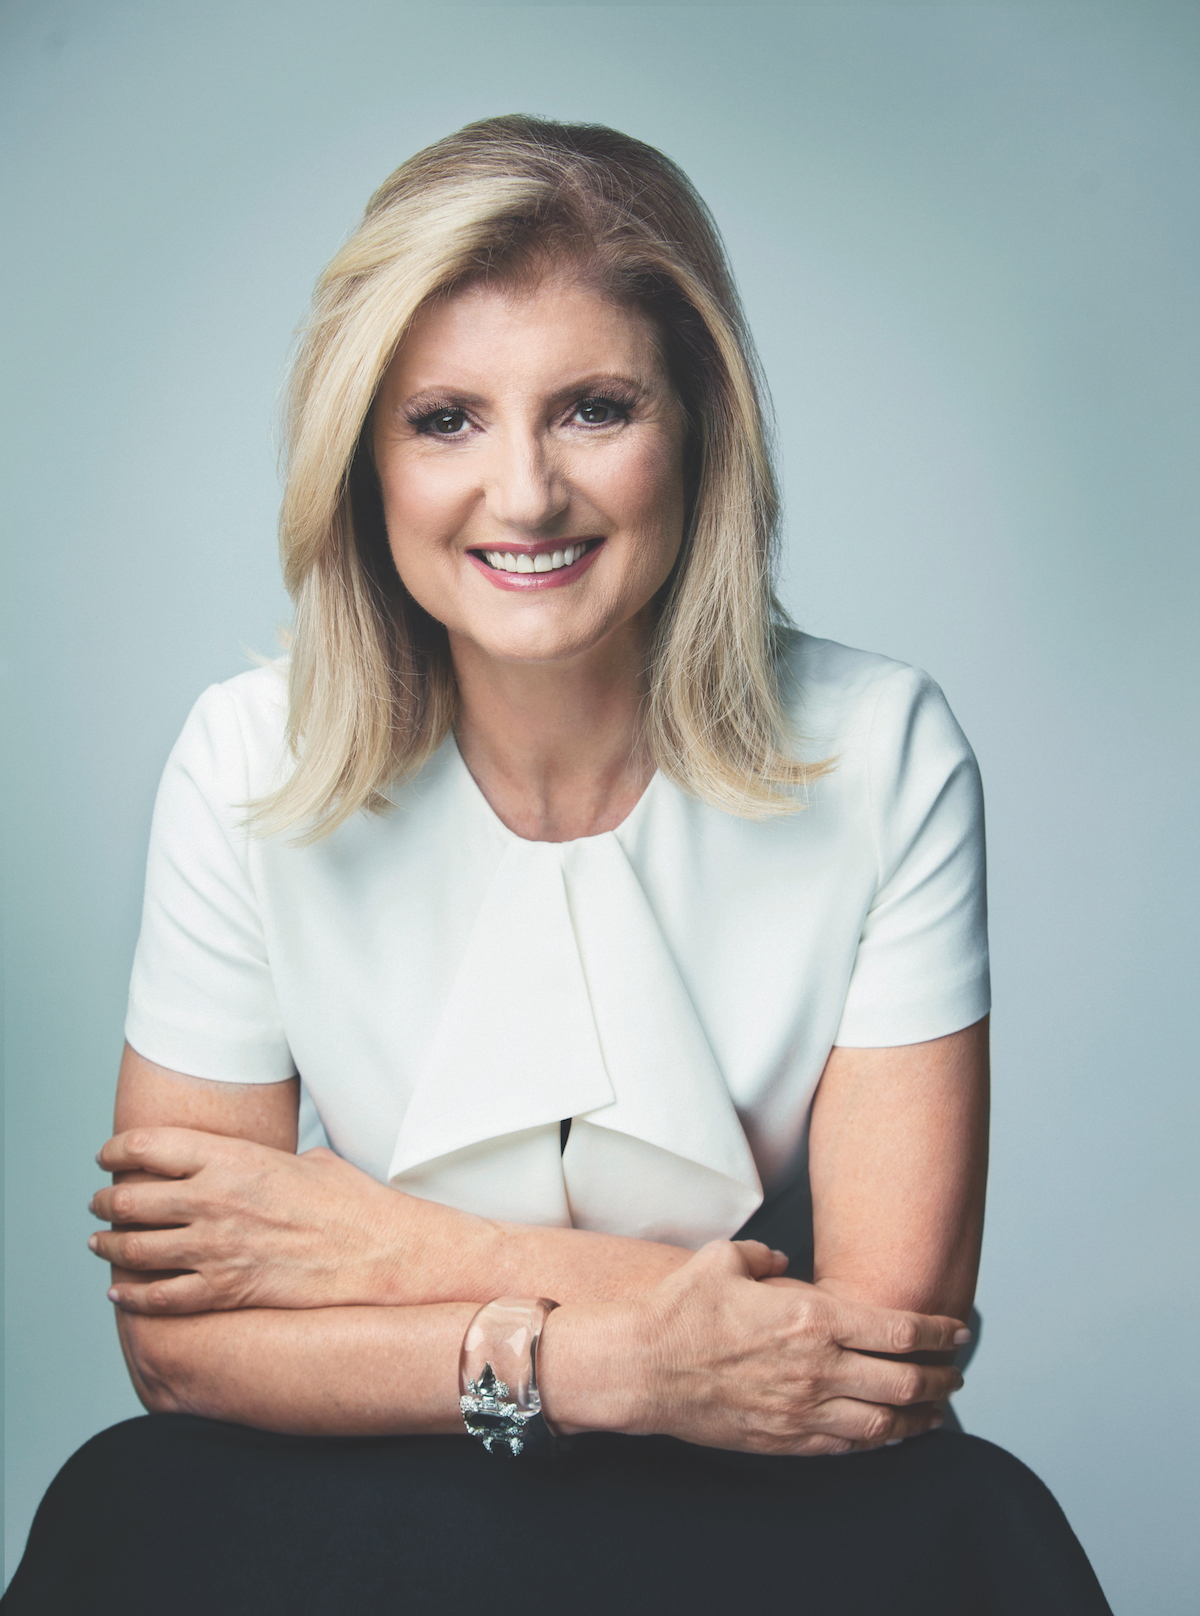 Arianna Huffington - Co-founder and former editor-in-chief of The Huffington Post